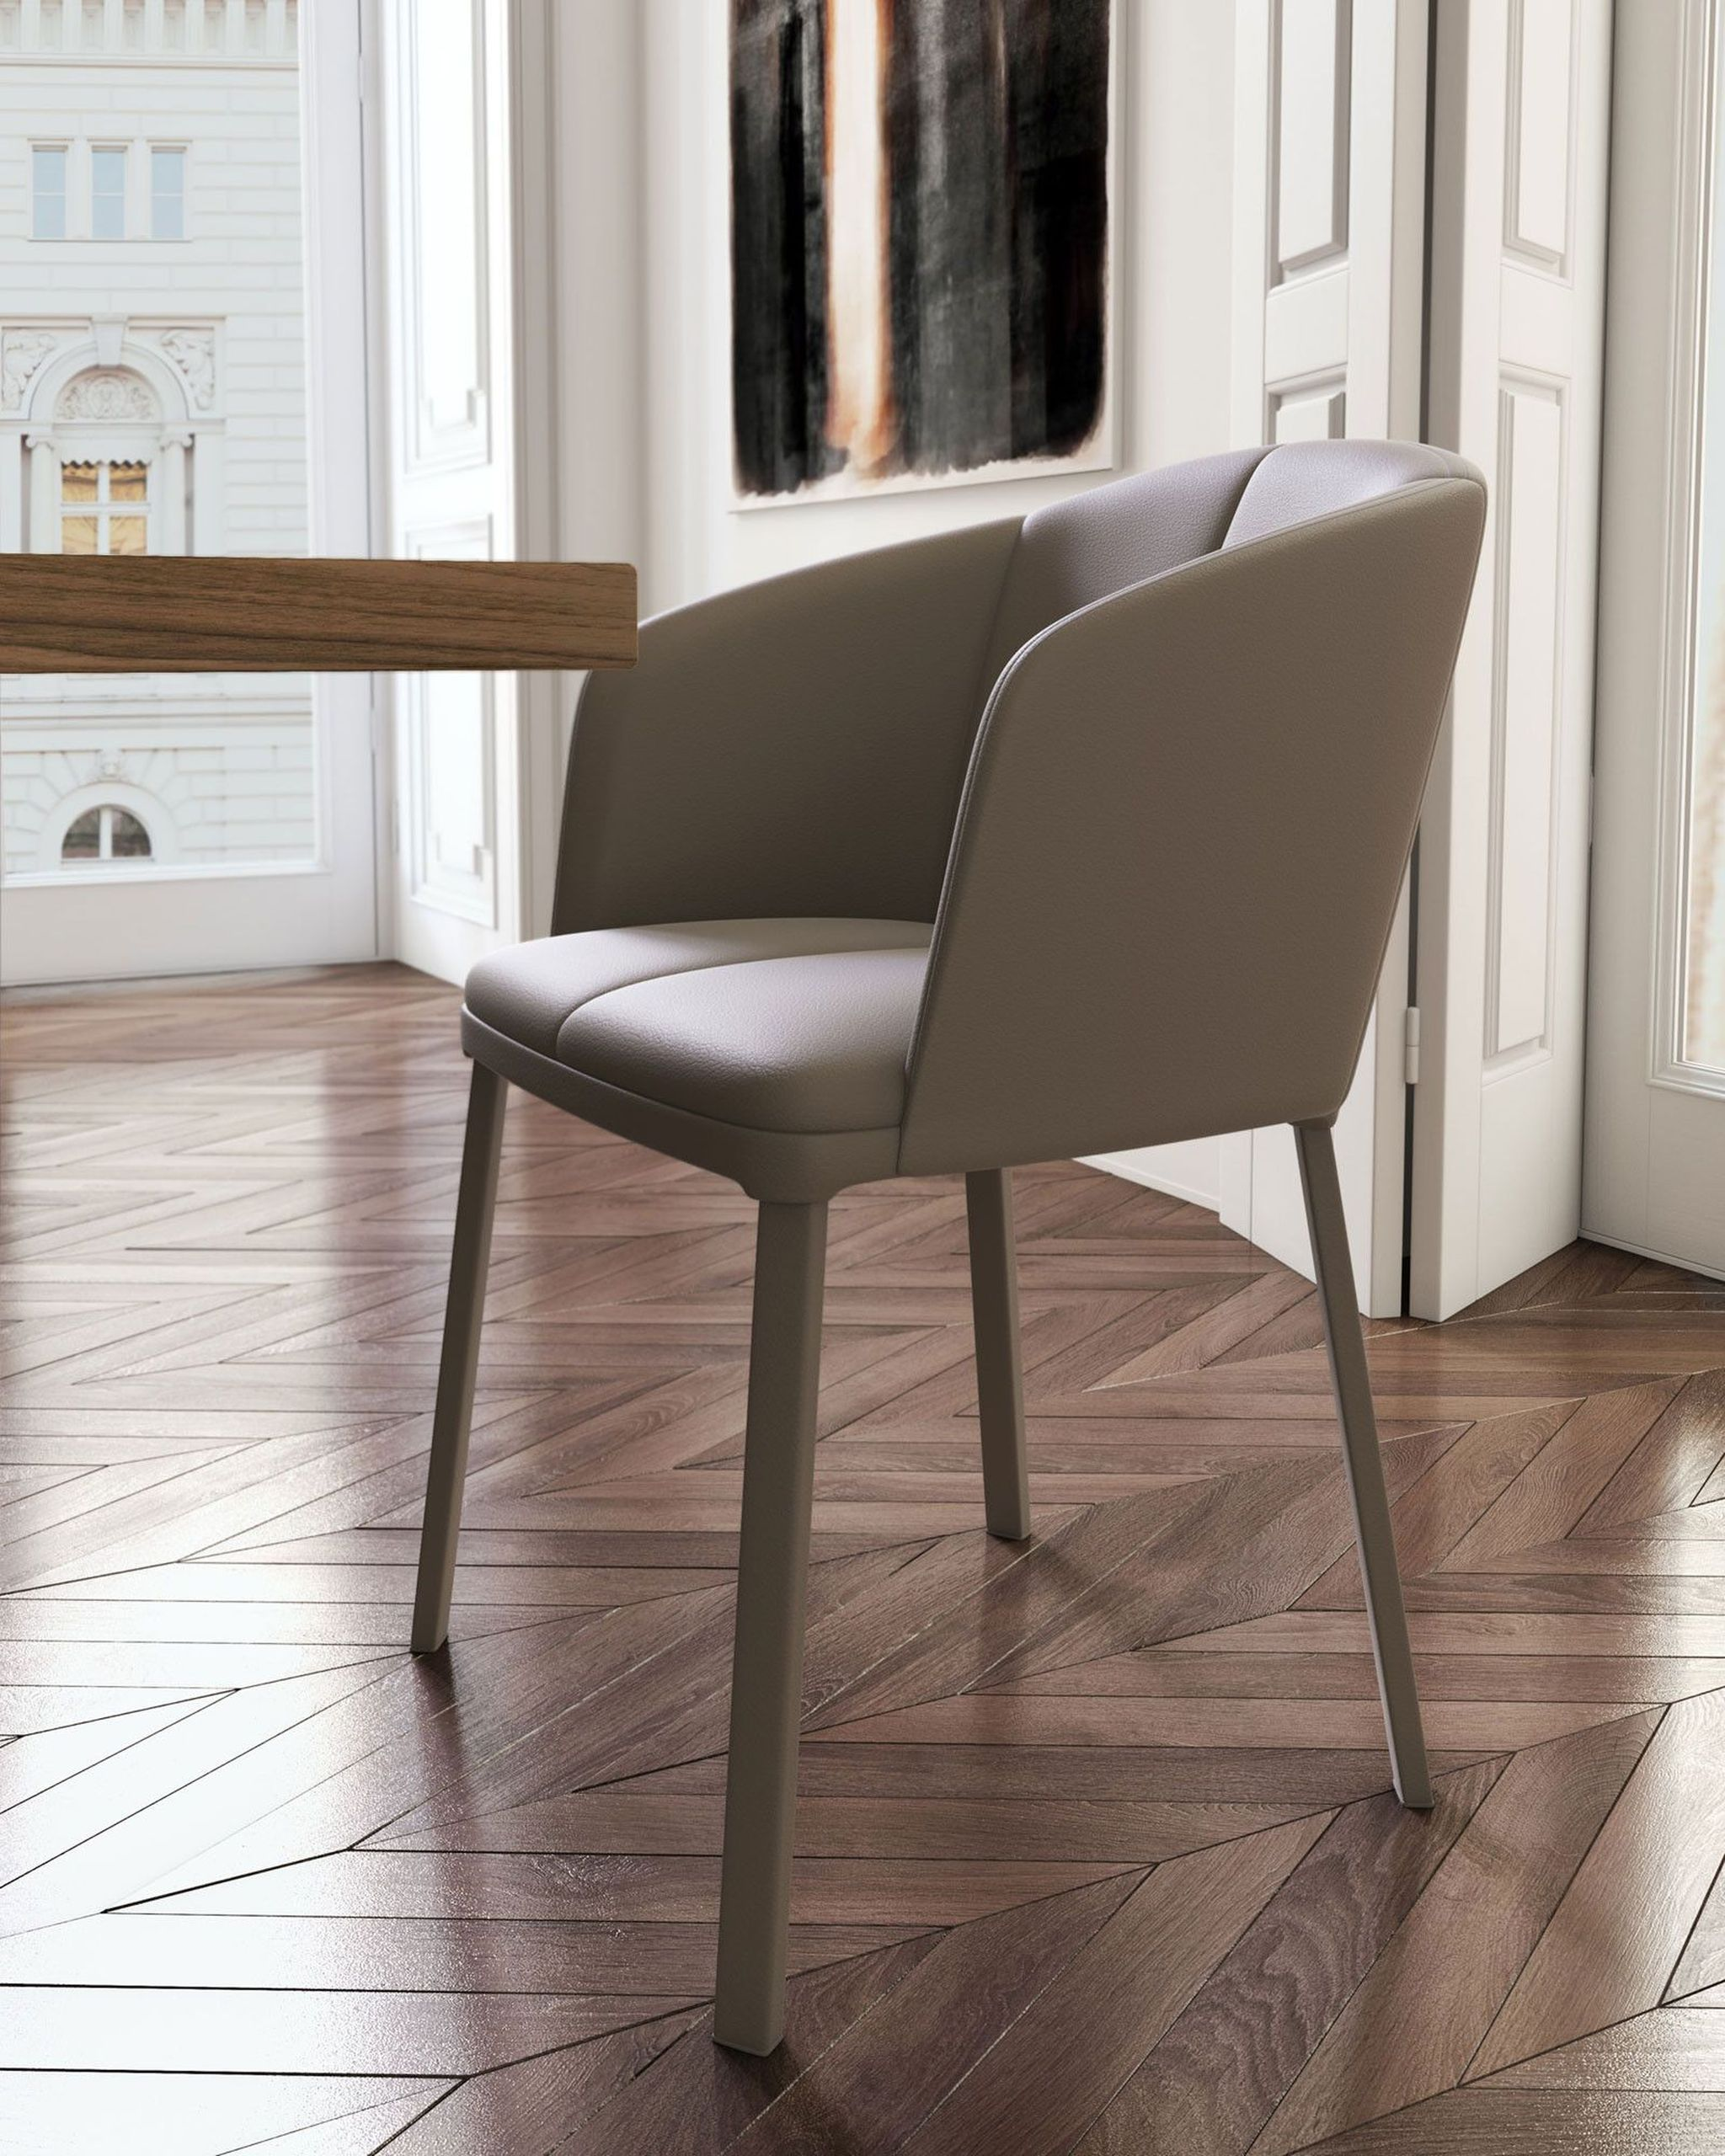 Amazing 549 00 Como Dining Chair Dining Chairs Table Leather Andrewgaddart Wooden Chair Designs For Living Room Andrewgaddartcom